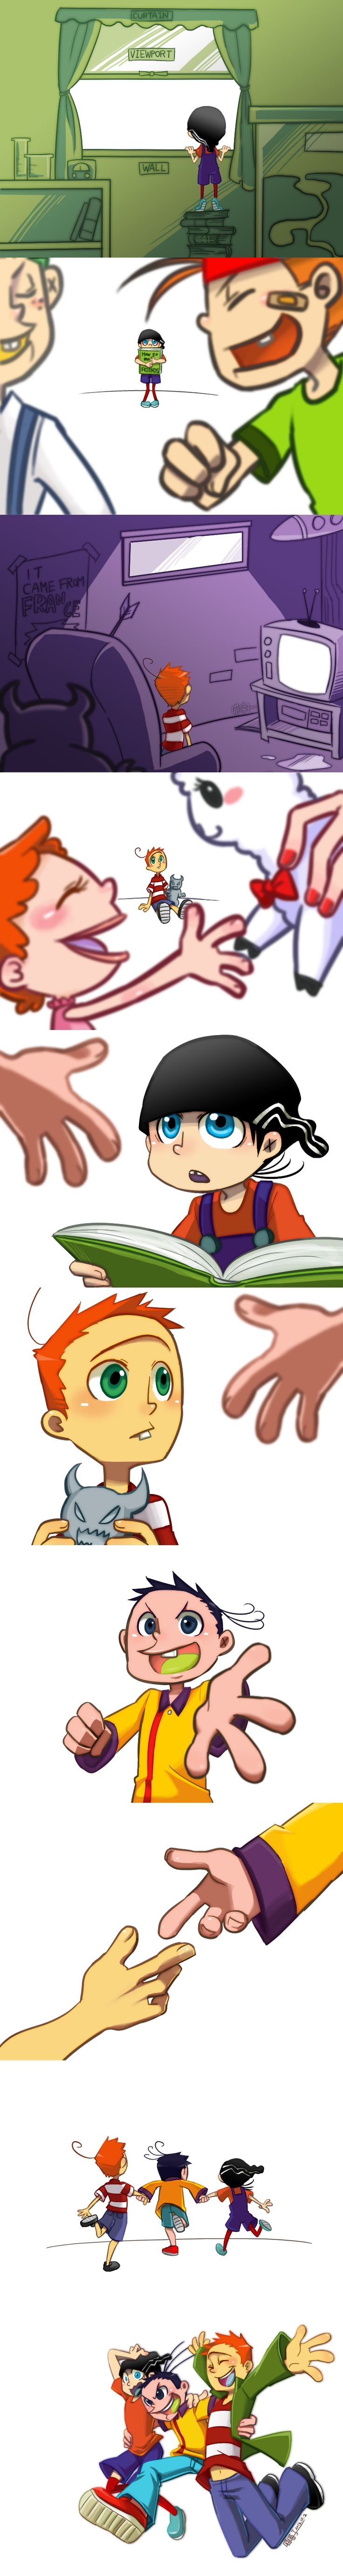 Ed Edd and Eddy_Best friends forever by aulauly7.deviantart.com on @deviantART| AWWWWW SO CUTE